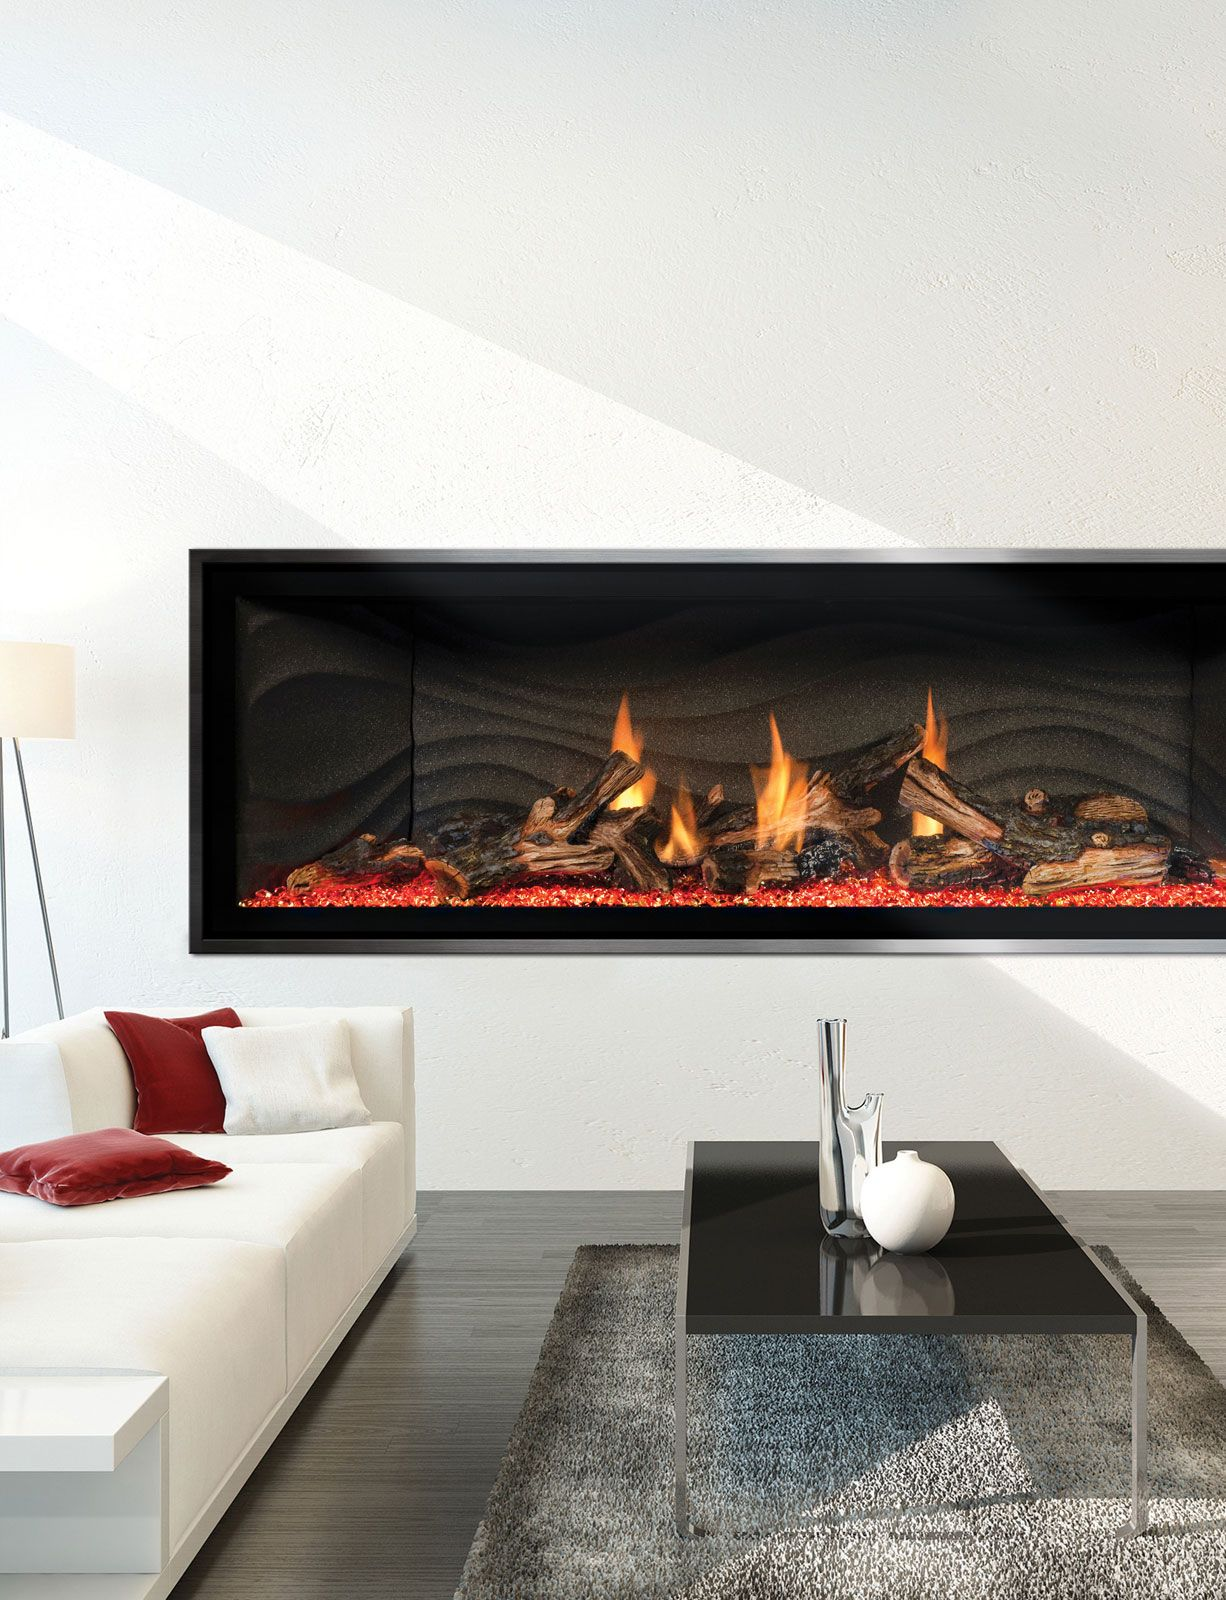 Boulevard Fireplace Luxury This Kind Of Style Has Wide Reaching Implications the New